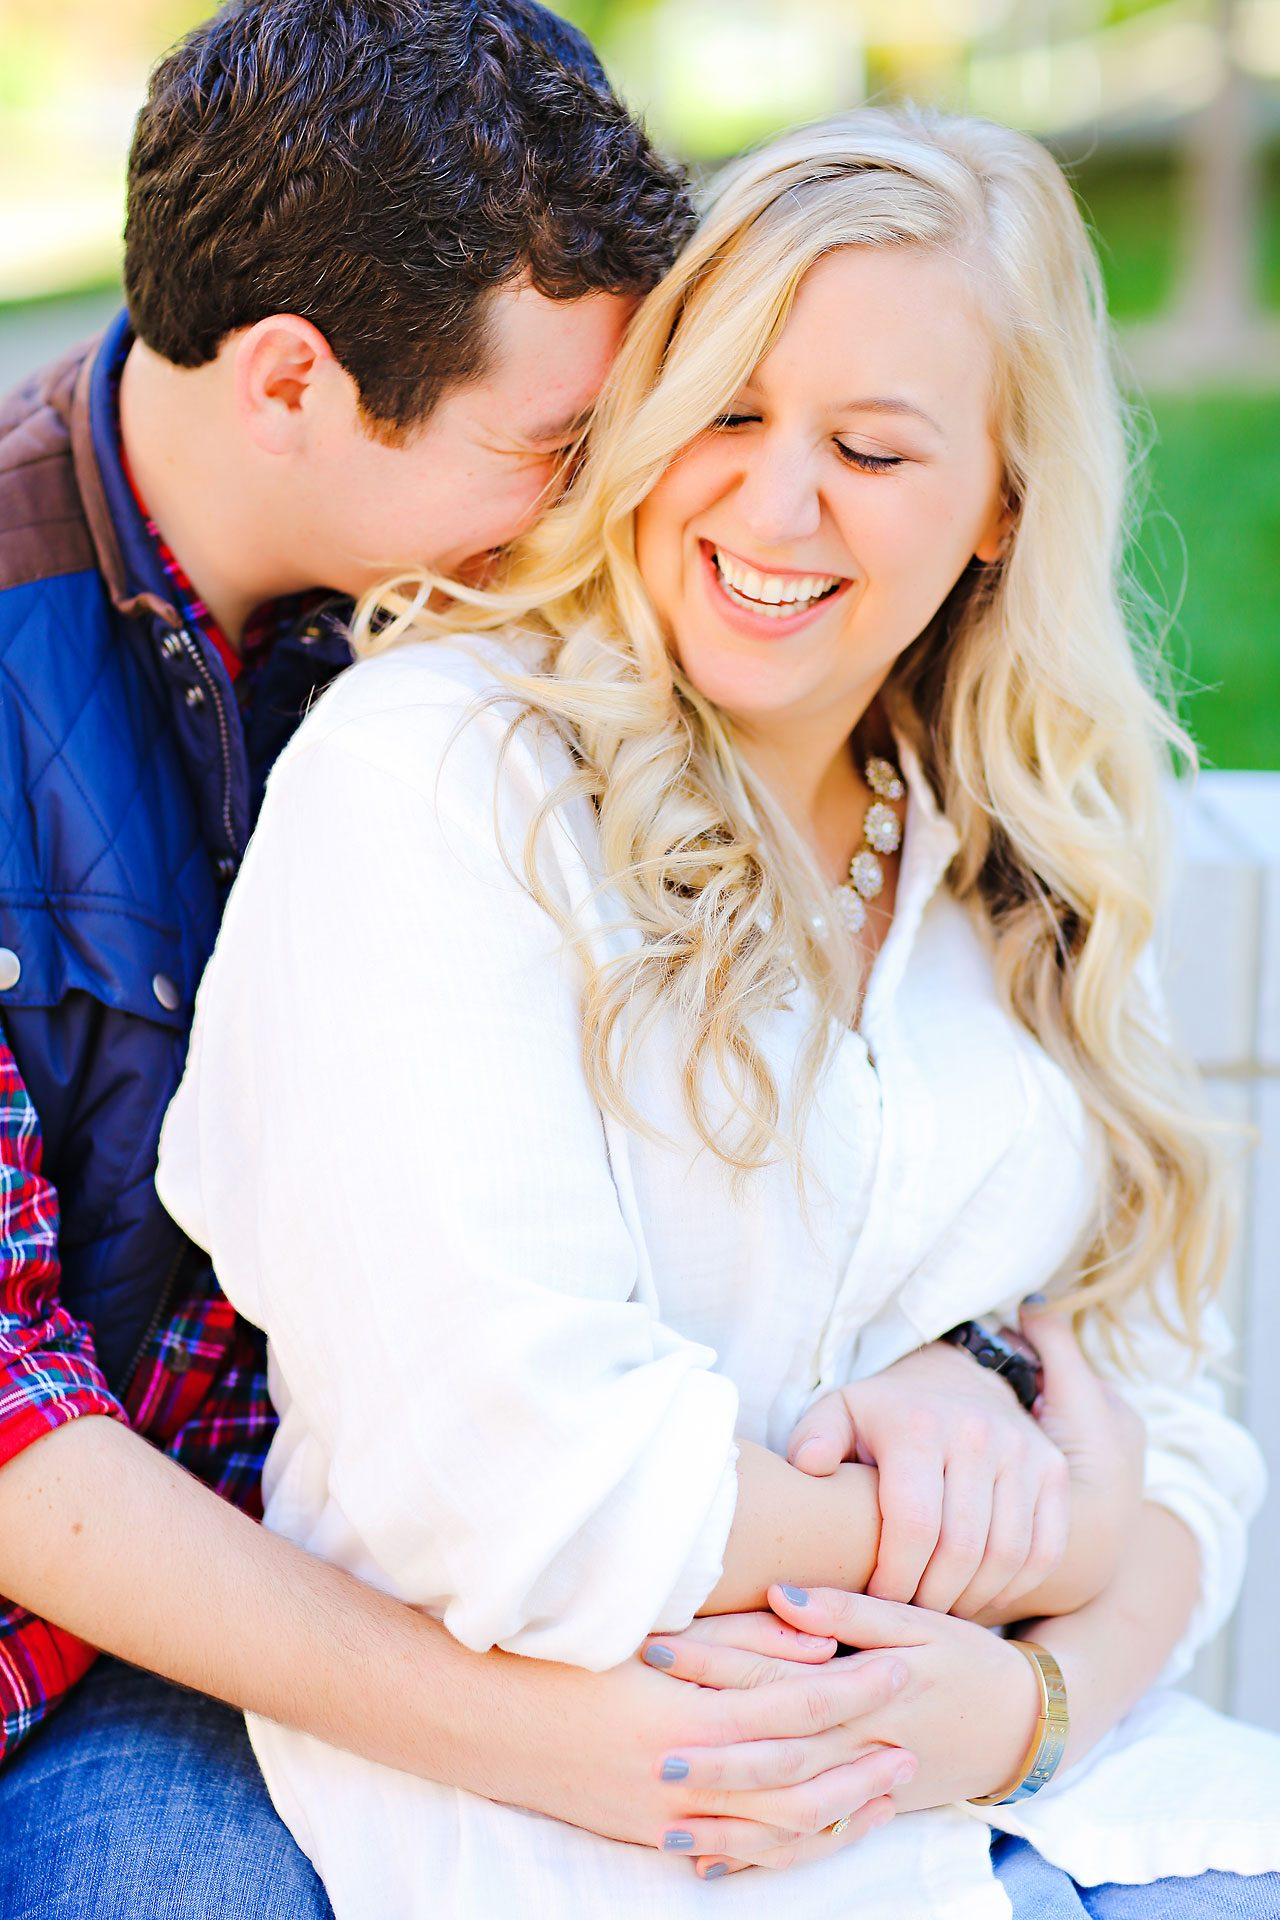 018 Taylor AJ Bloomington Engagement Session